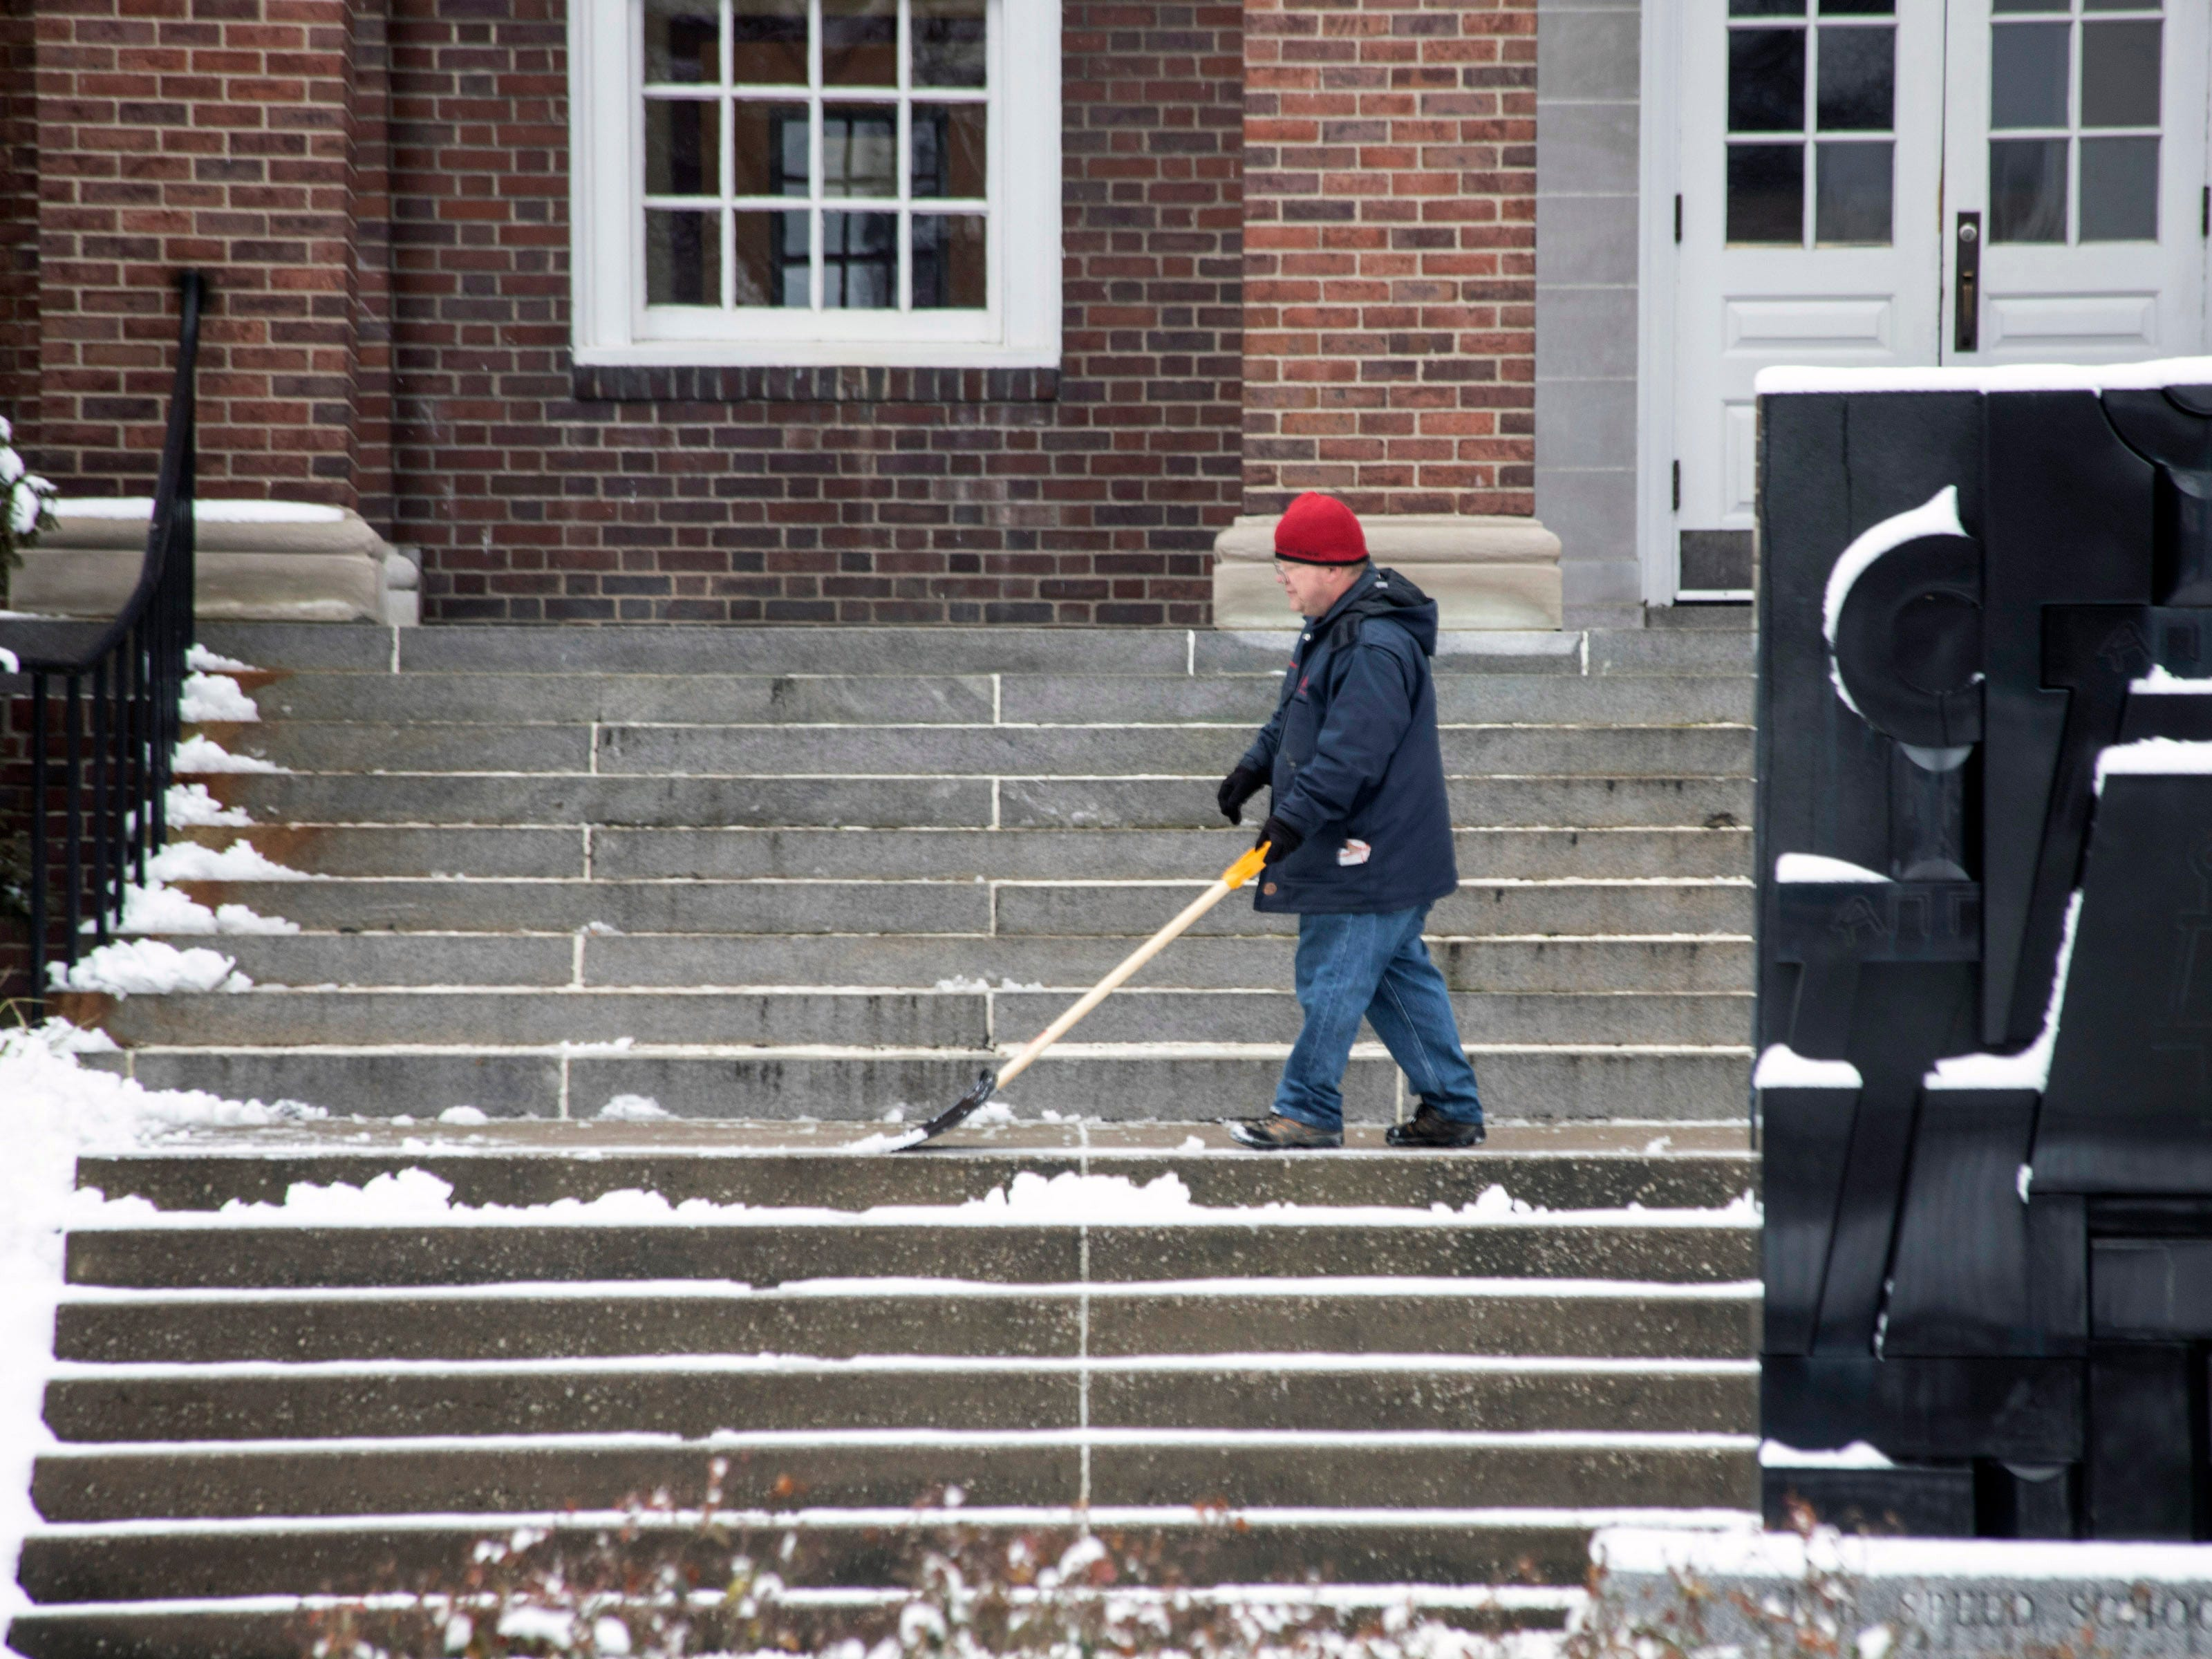 Workers cleared stairwells and sidewalks on the U of L campus after Louisville received its first snowfall of 2019 on Saturday. 1/12/19